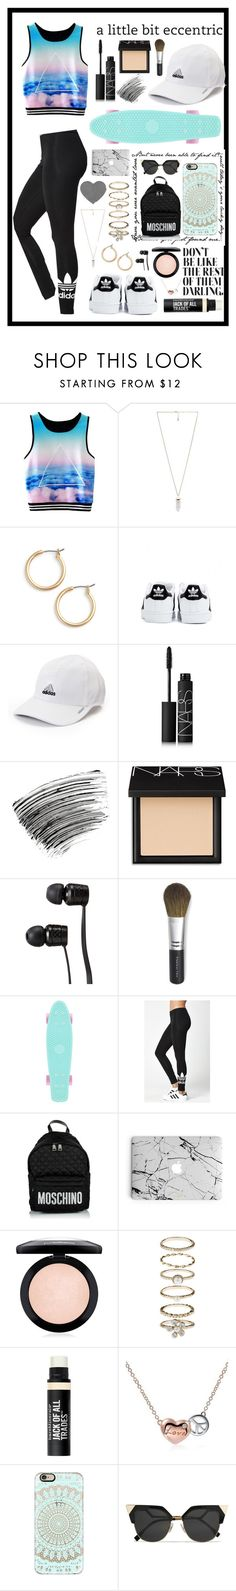 """""""A little bit eccentric"""" by rhiannonpsayer on Polyvore featuring Amber Sceats, Nordstrom, adidas, NARS Cosmetics, Bobbi Brown Cosmetics, Vans, Bare Escentuals, Moschino, MAC Cosmetics and Accessorize"""